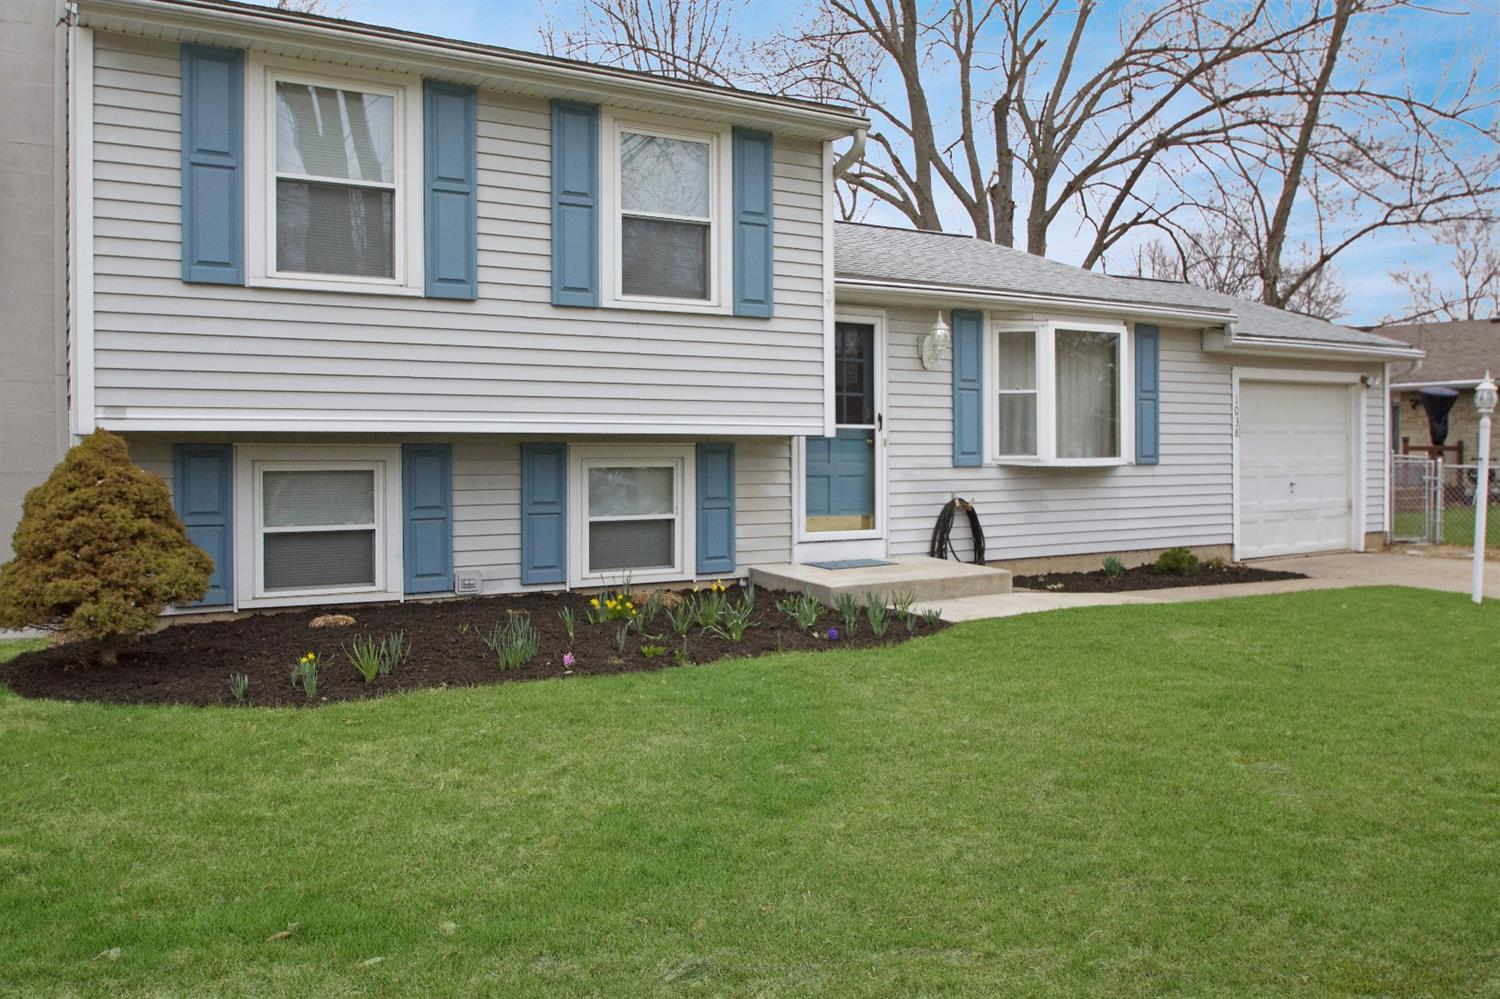 Very clean & larger than it appears. 4 levels with up to date fixtures & new stainless steel appliances. Freshly painted throughout, hardwood floors & almost new carpets.Finished Lower level, lots of storage space, fenced yard, tool shed,new covered deck. Great family neighborhood. Ready to move into!